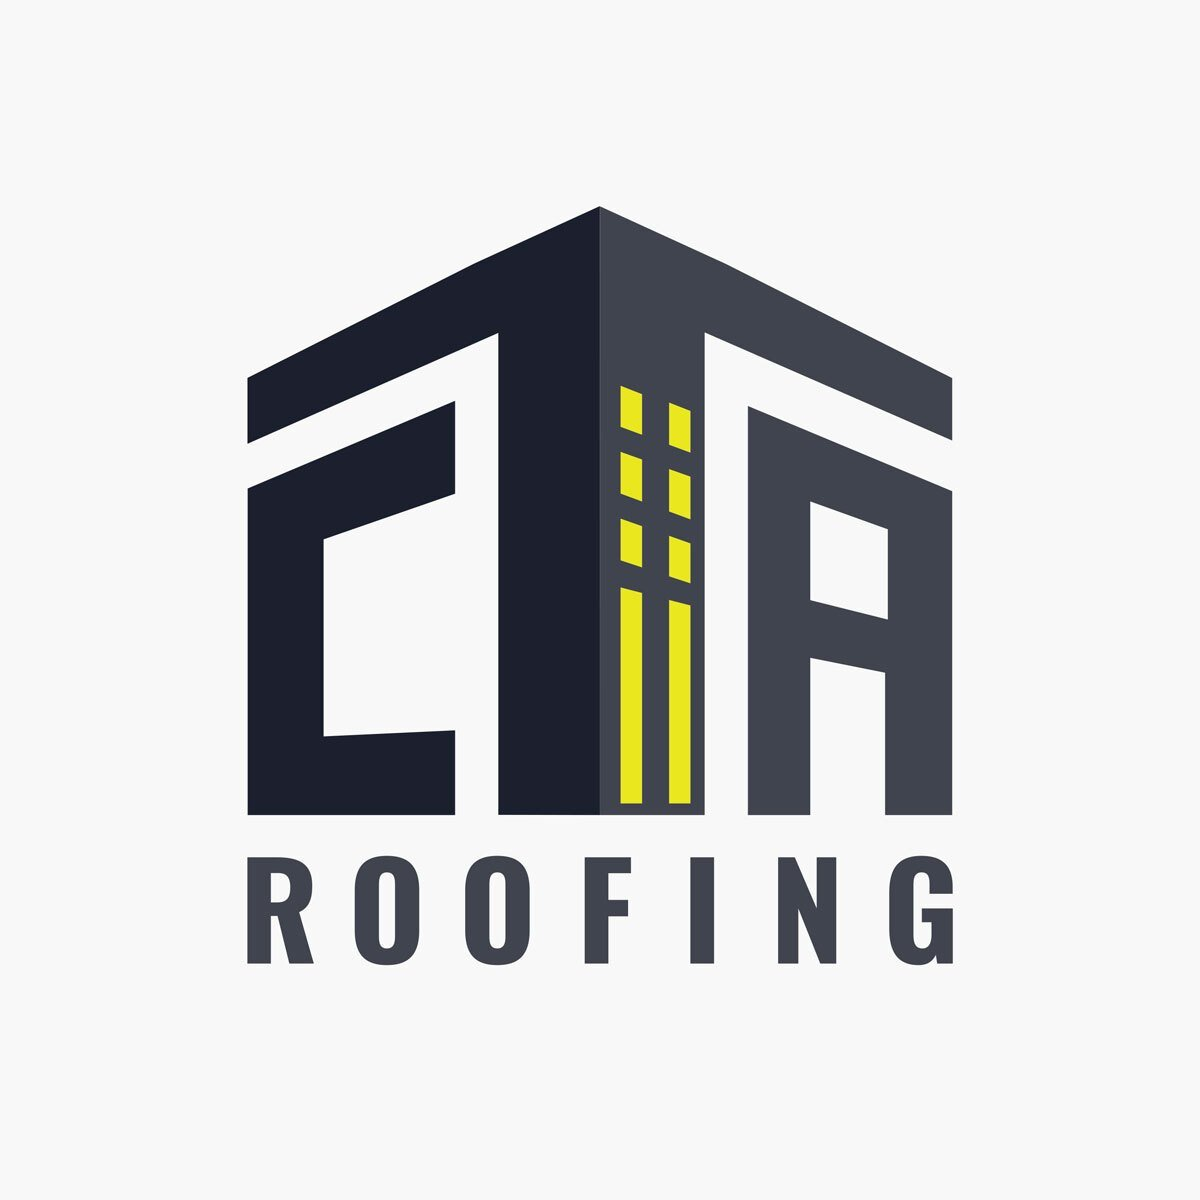 Roofing company logo design from BrandSwan, a Delaware branding agency